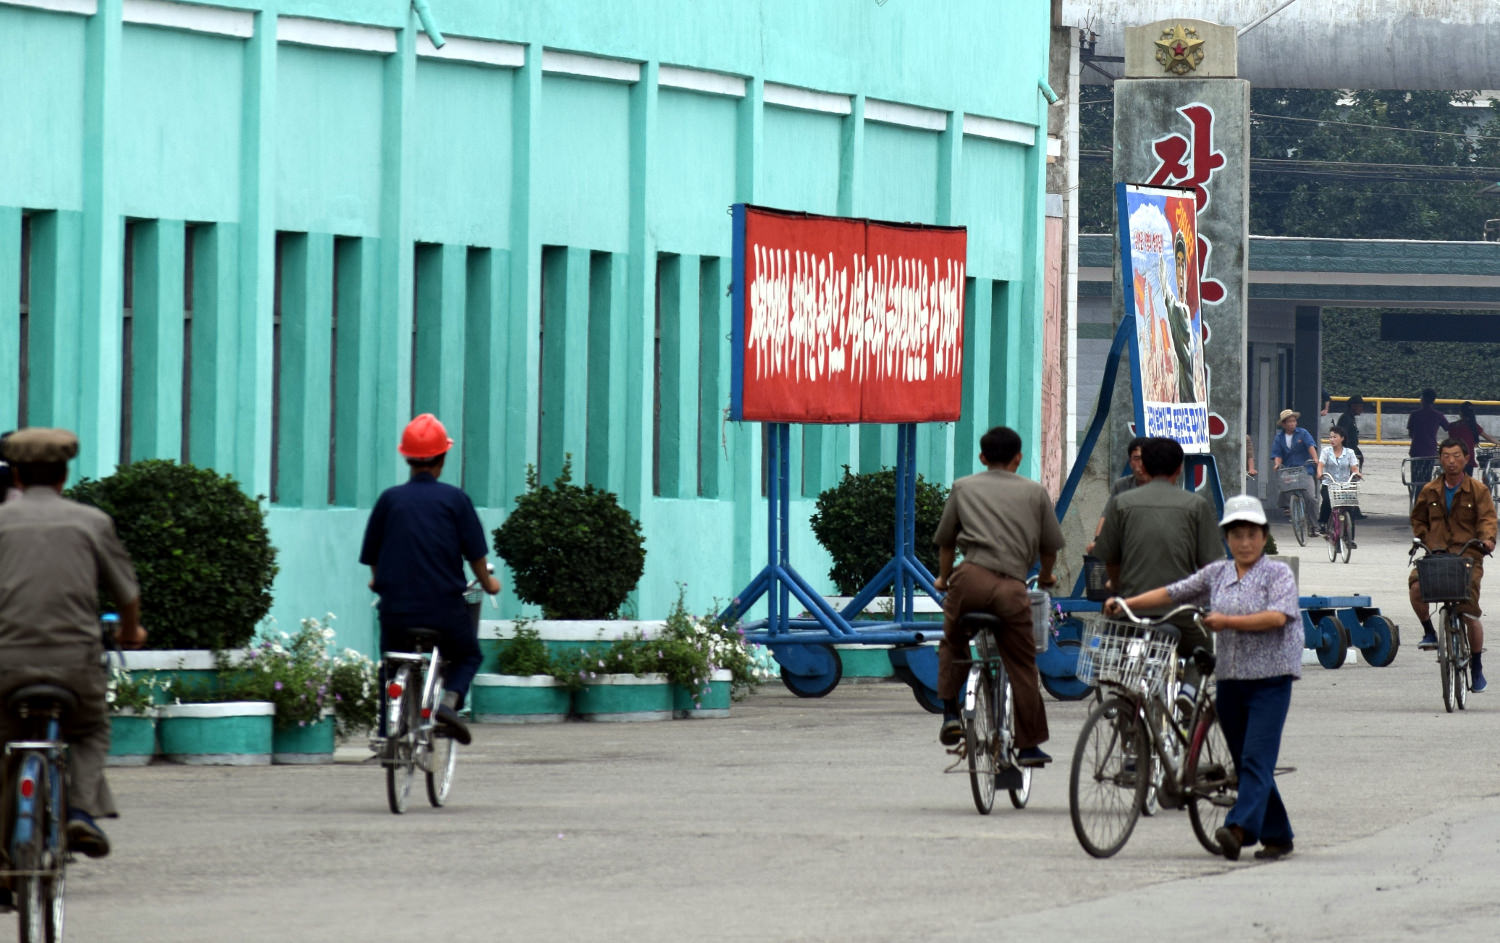 Entrance to the Hungnam Fertiliser factory in North Korea (DPRK)